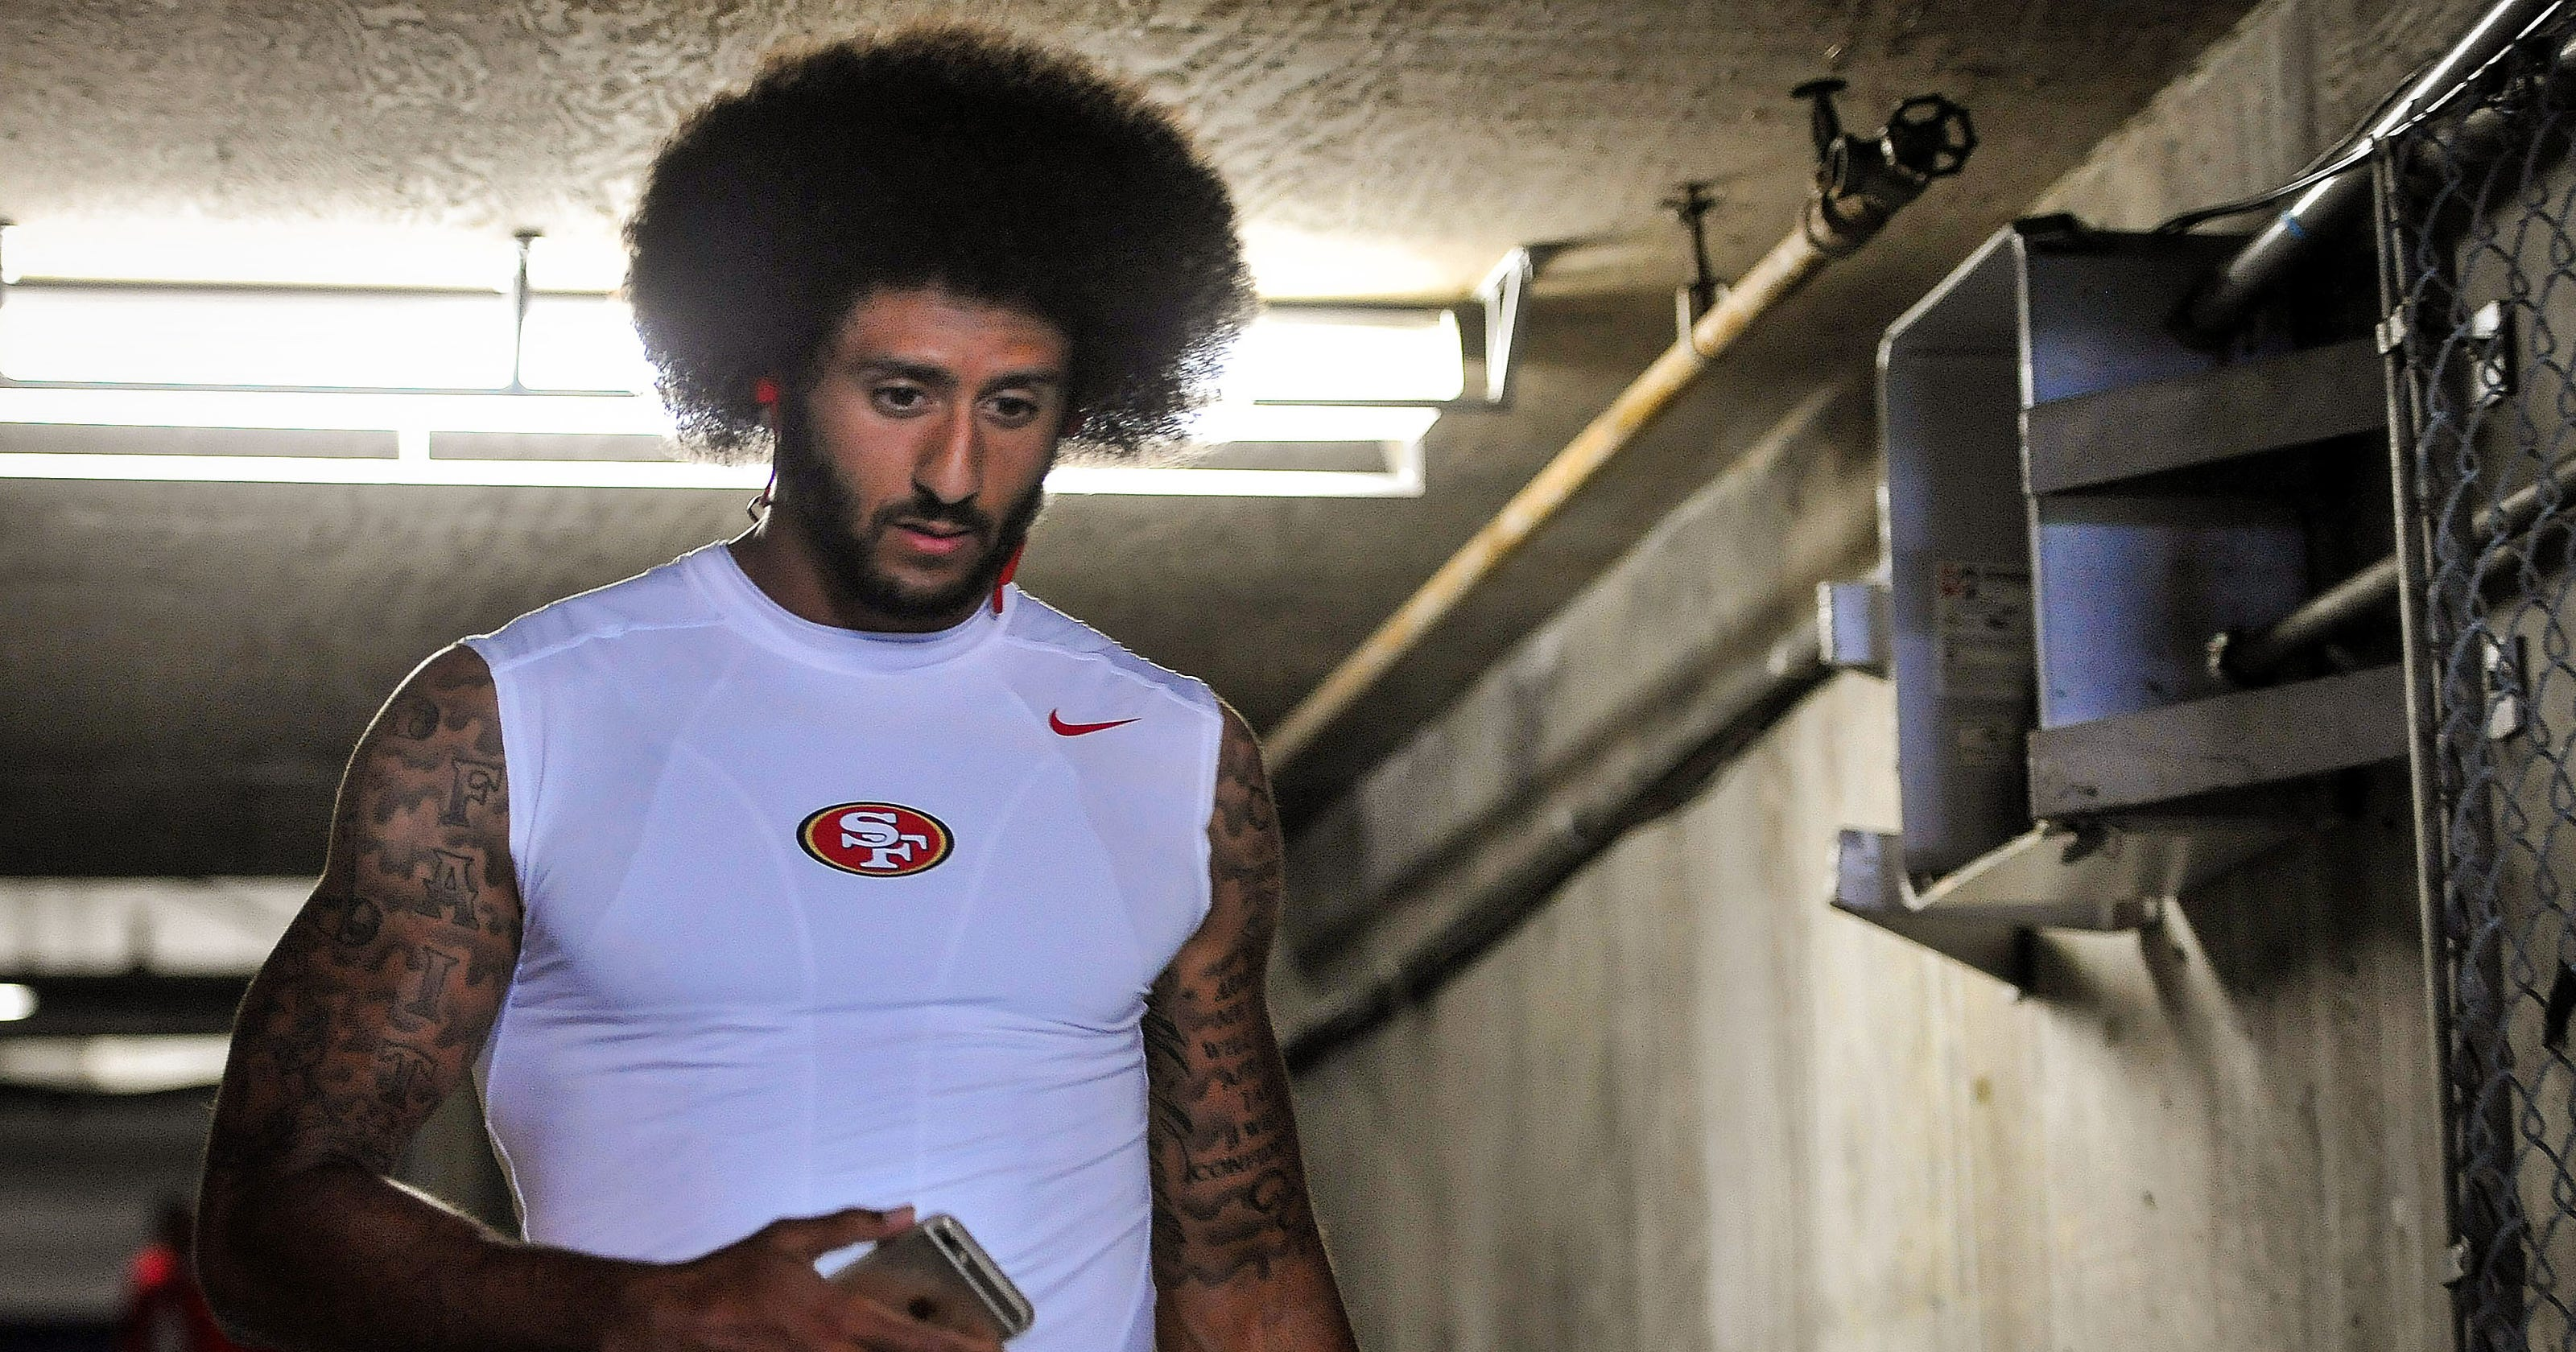 big sale 122de 6b887 Why Colin Kaepernick and other athletes are more likely to address social  issues